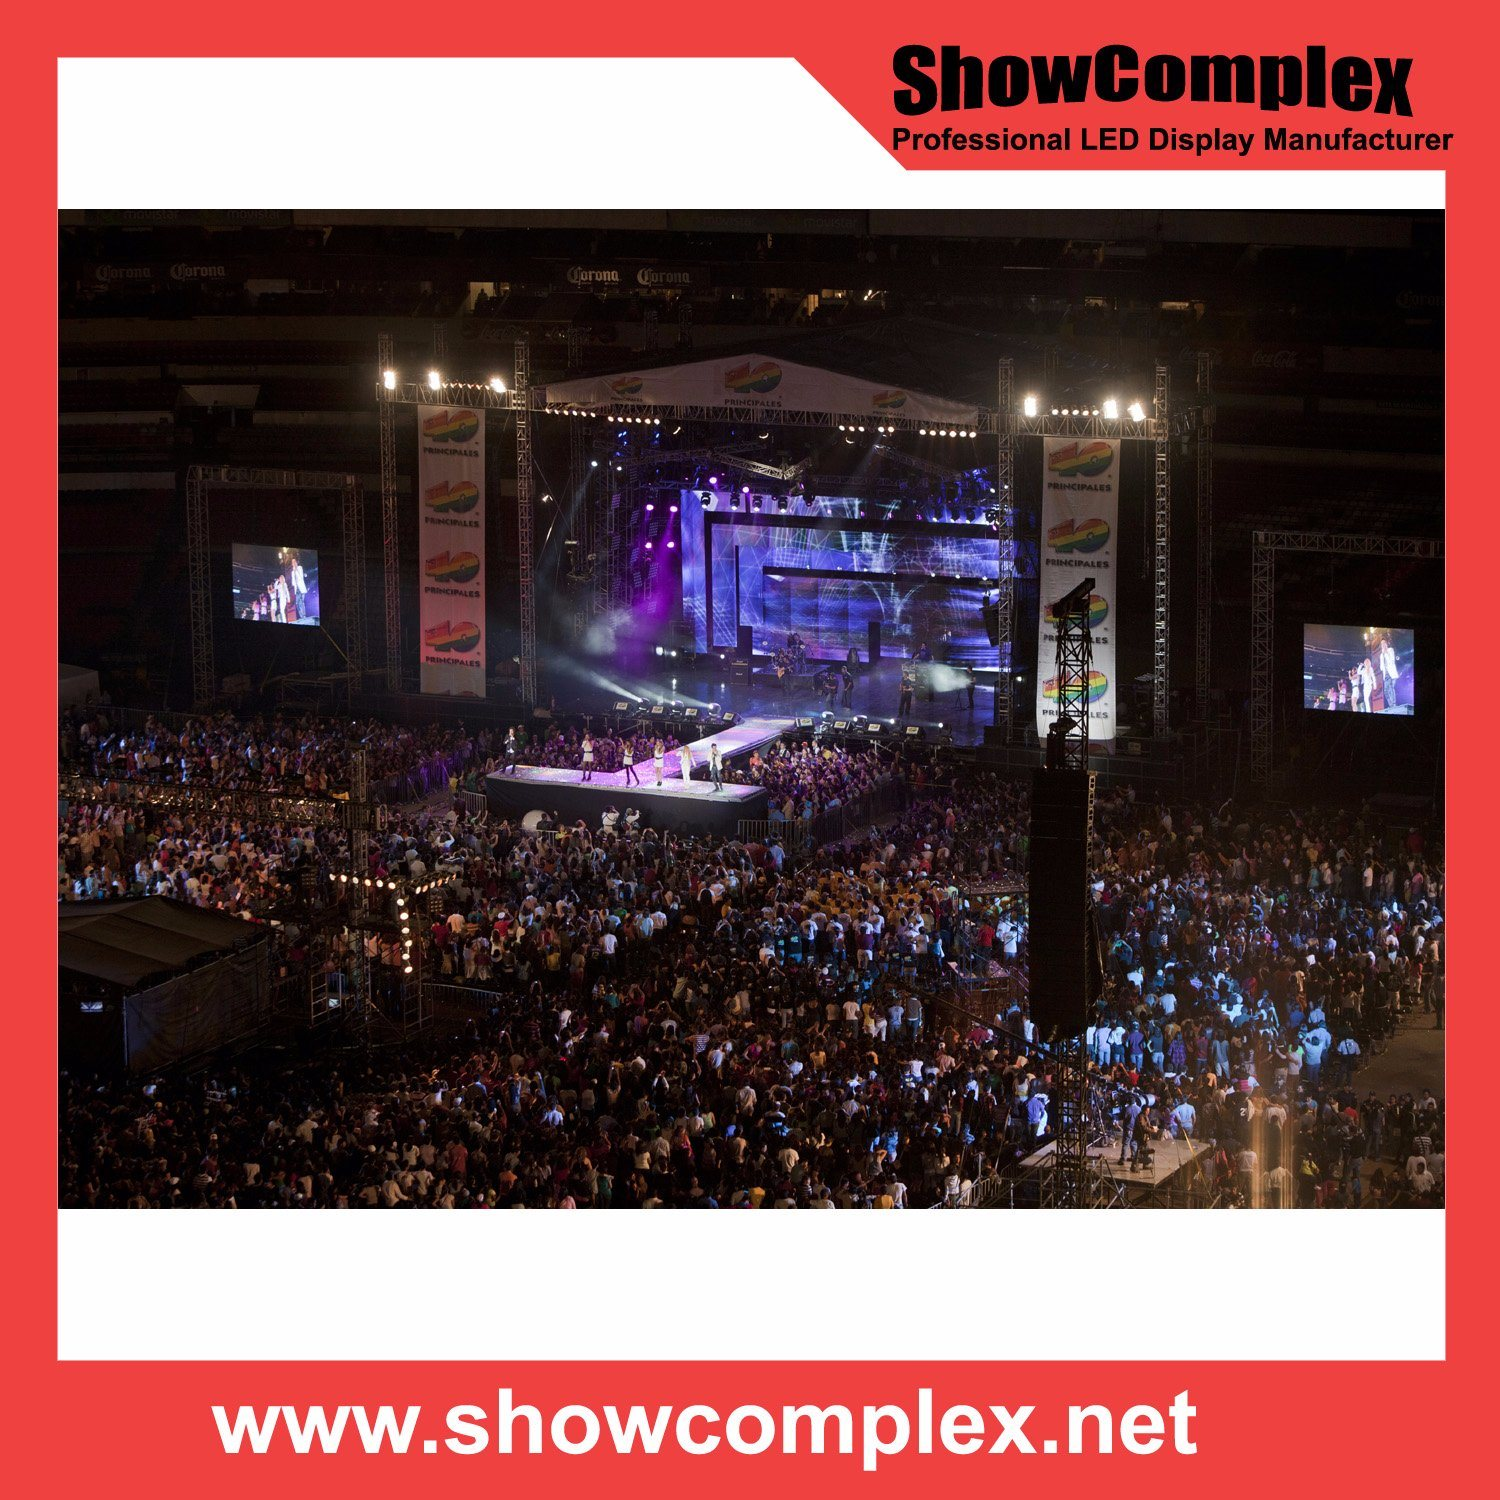 Outdoor Full Color Rental LED Video Display for Concert with High Brightness (500*500mm pH3.91)